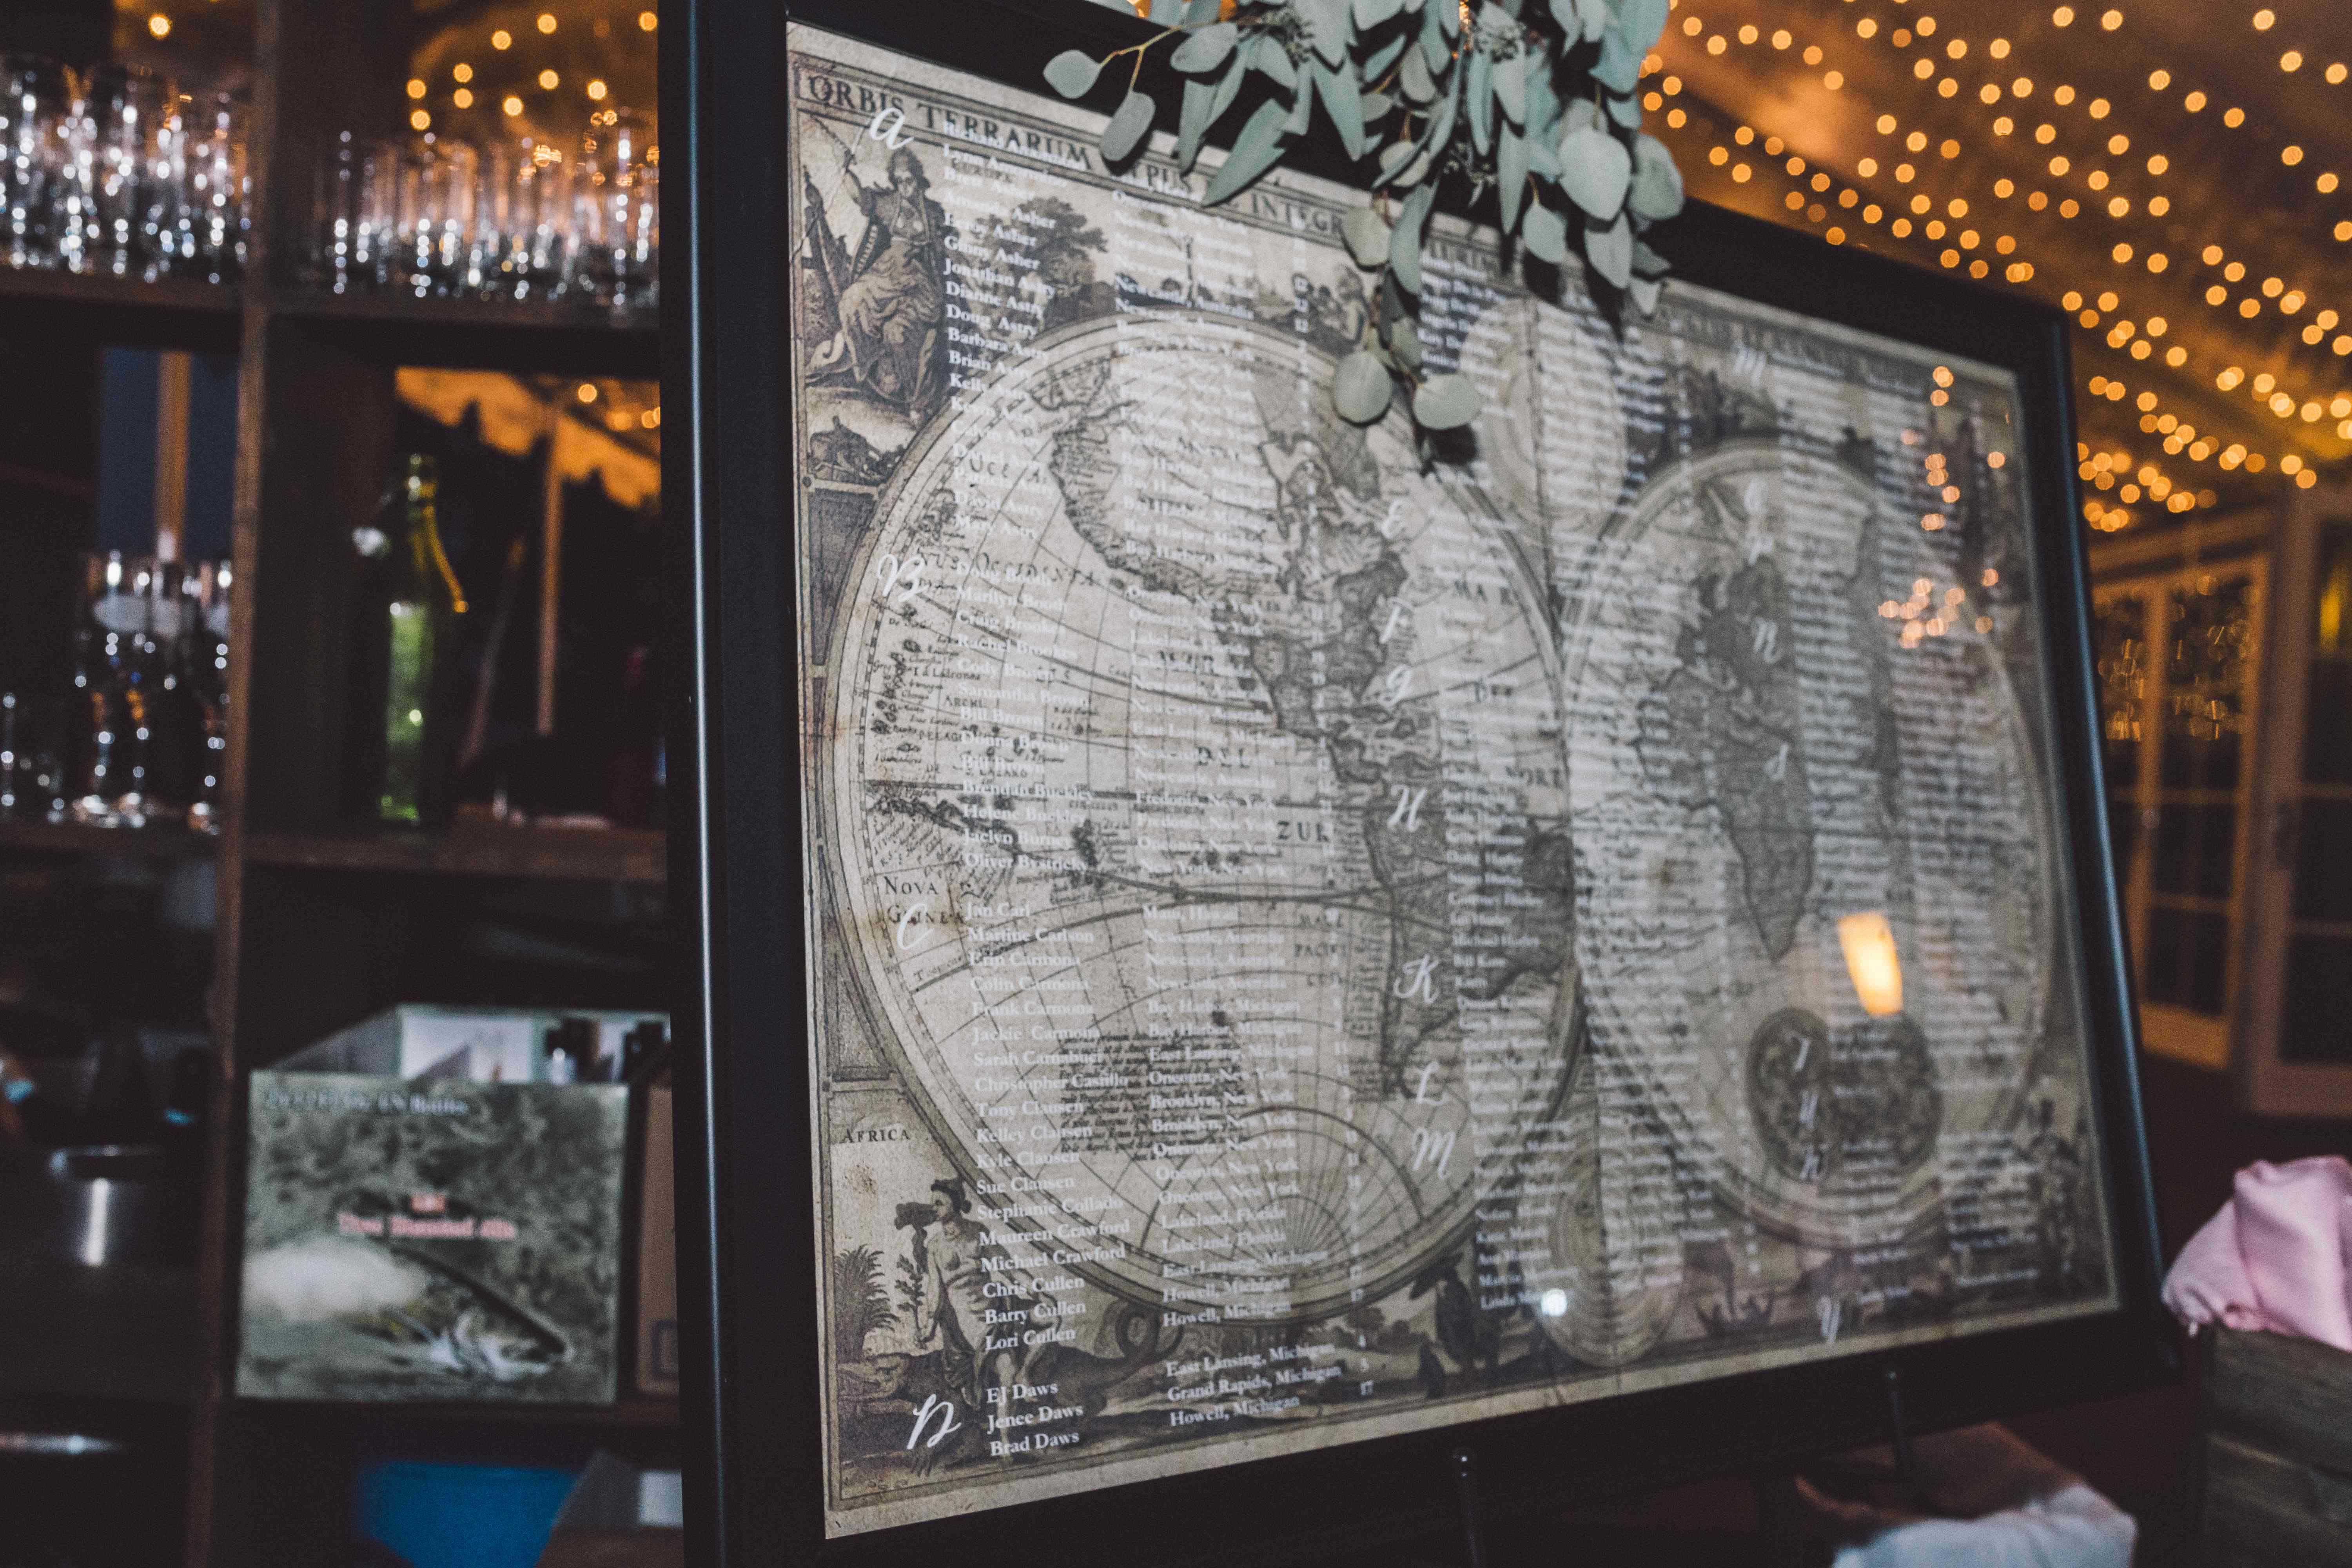 Seating Chart on Vintage Map